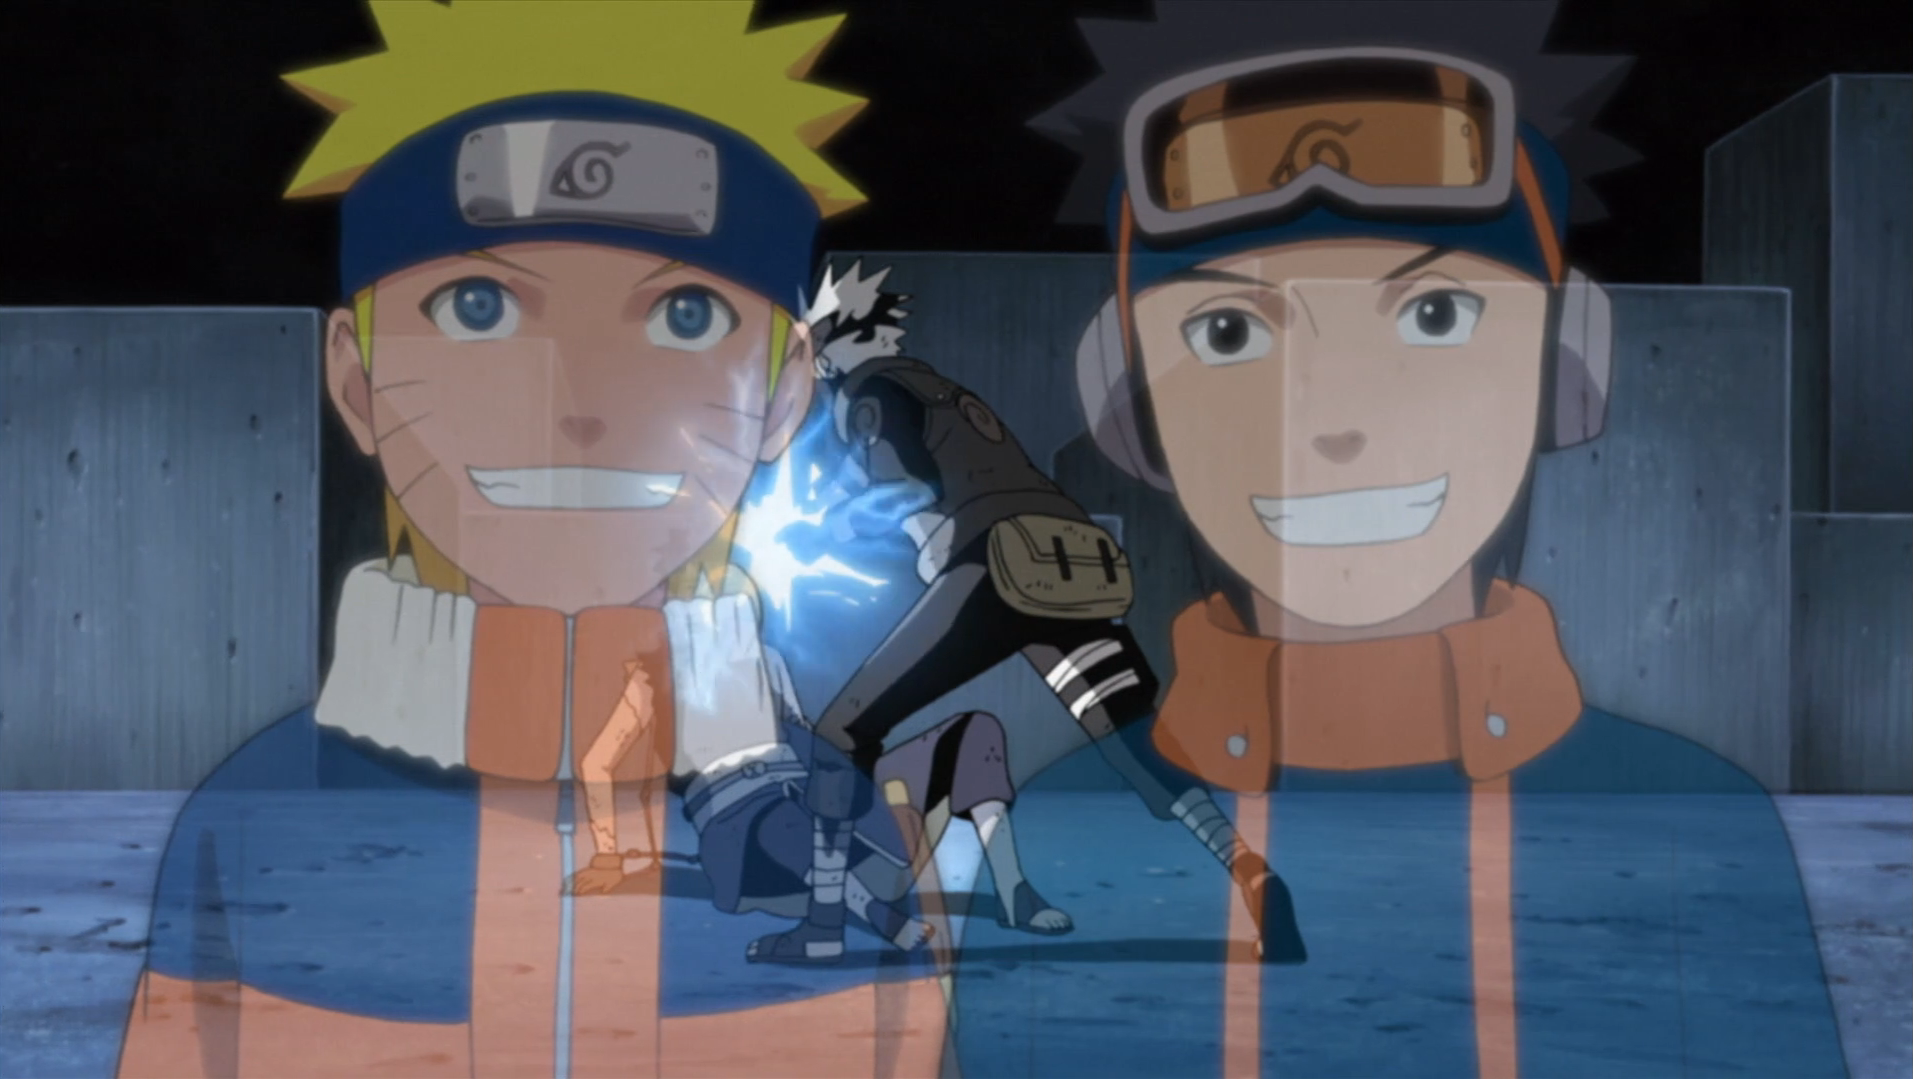 Kakashi points out the similarities between Naruto and